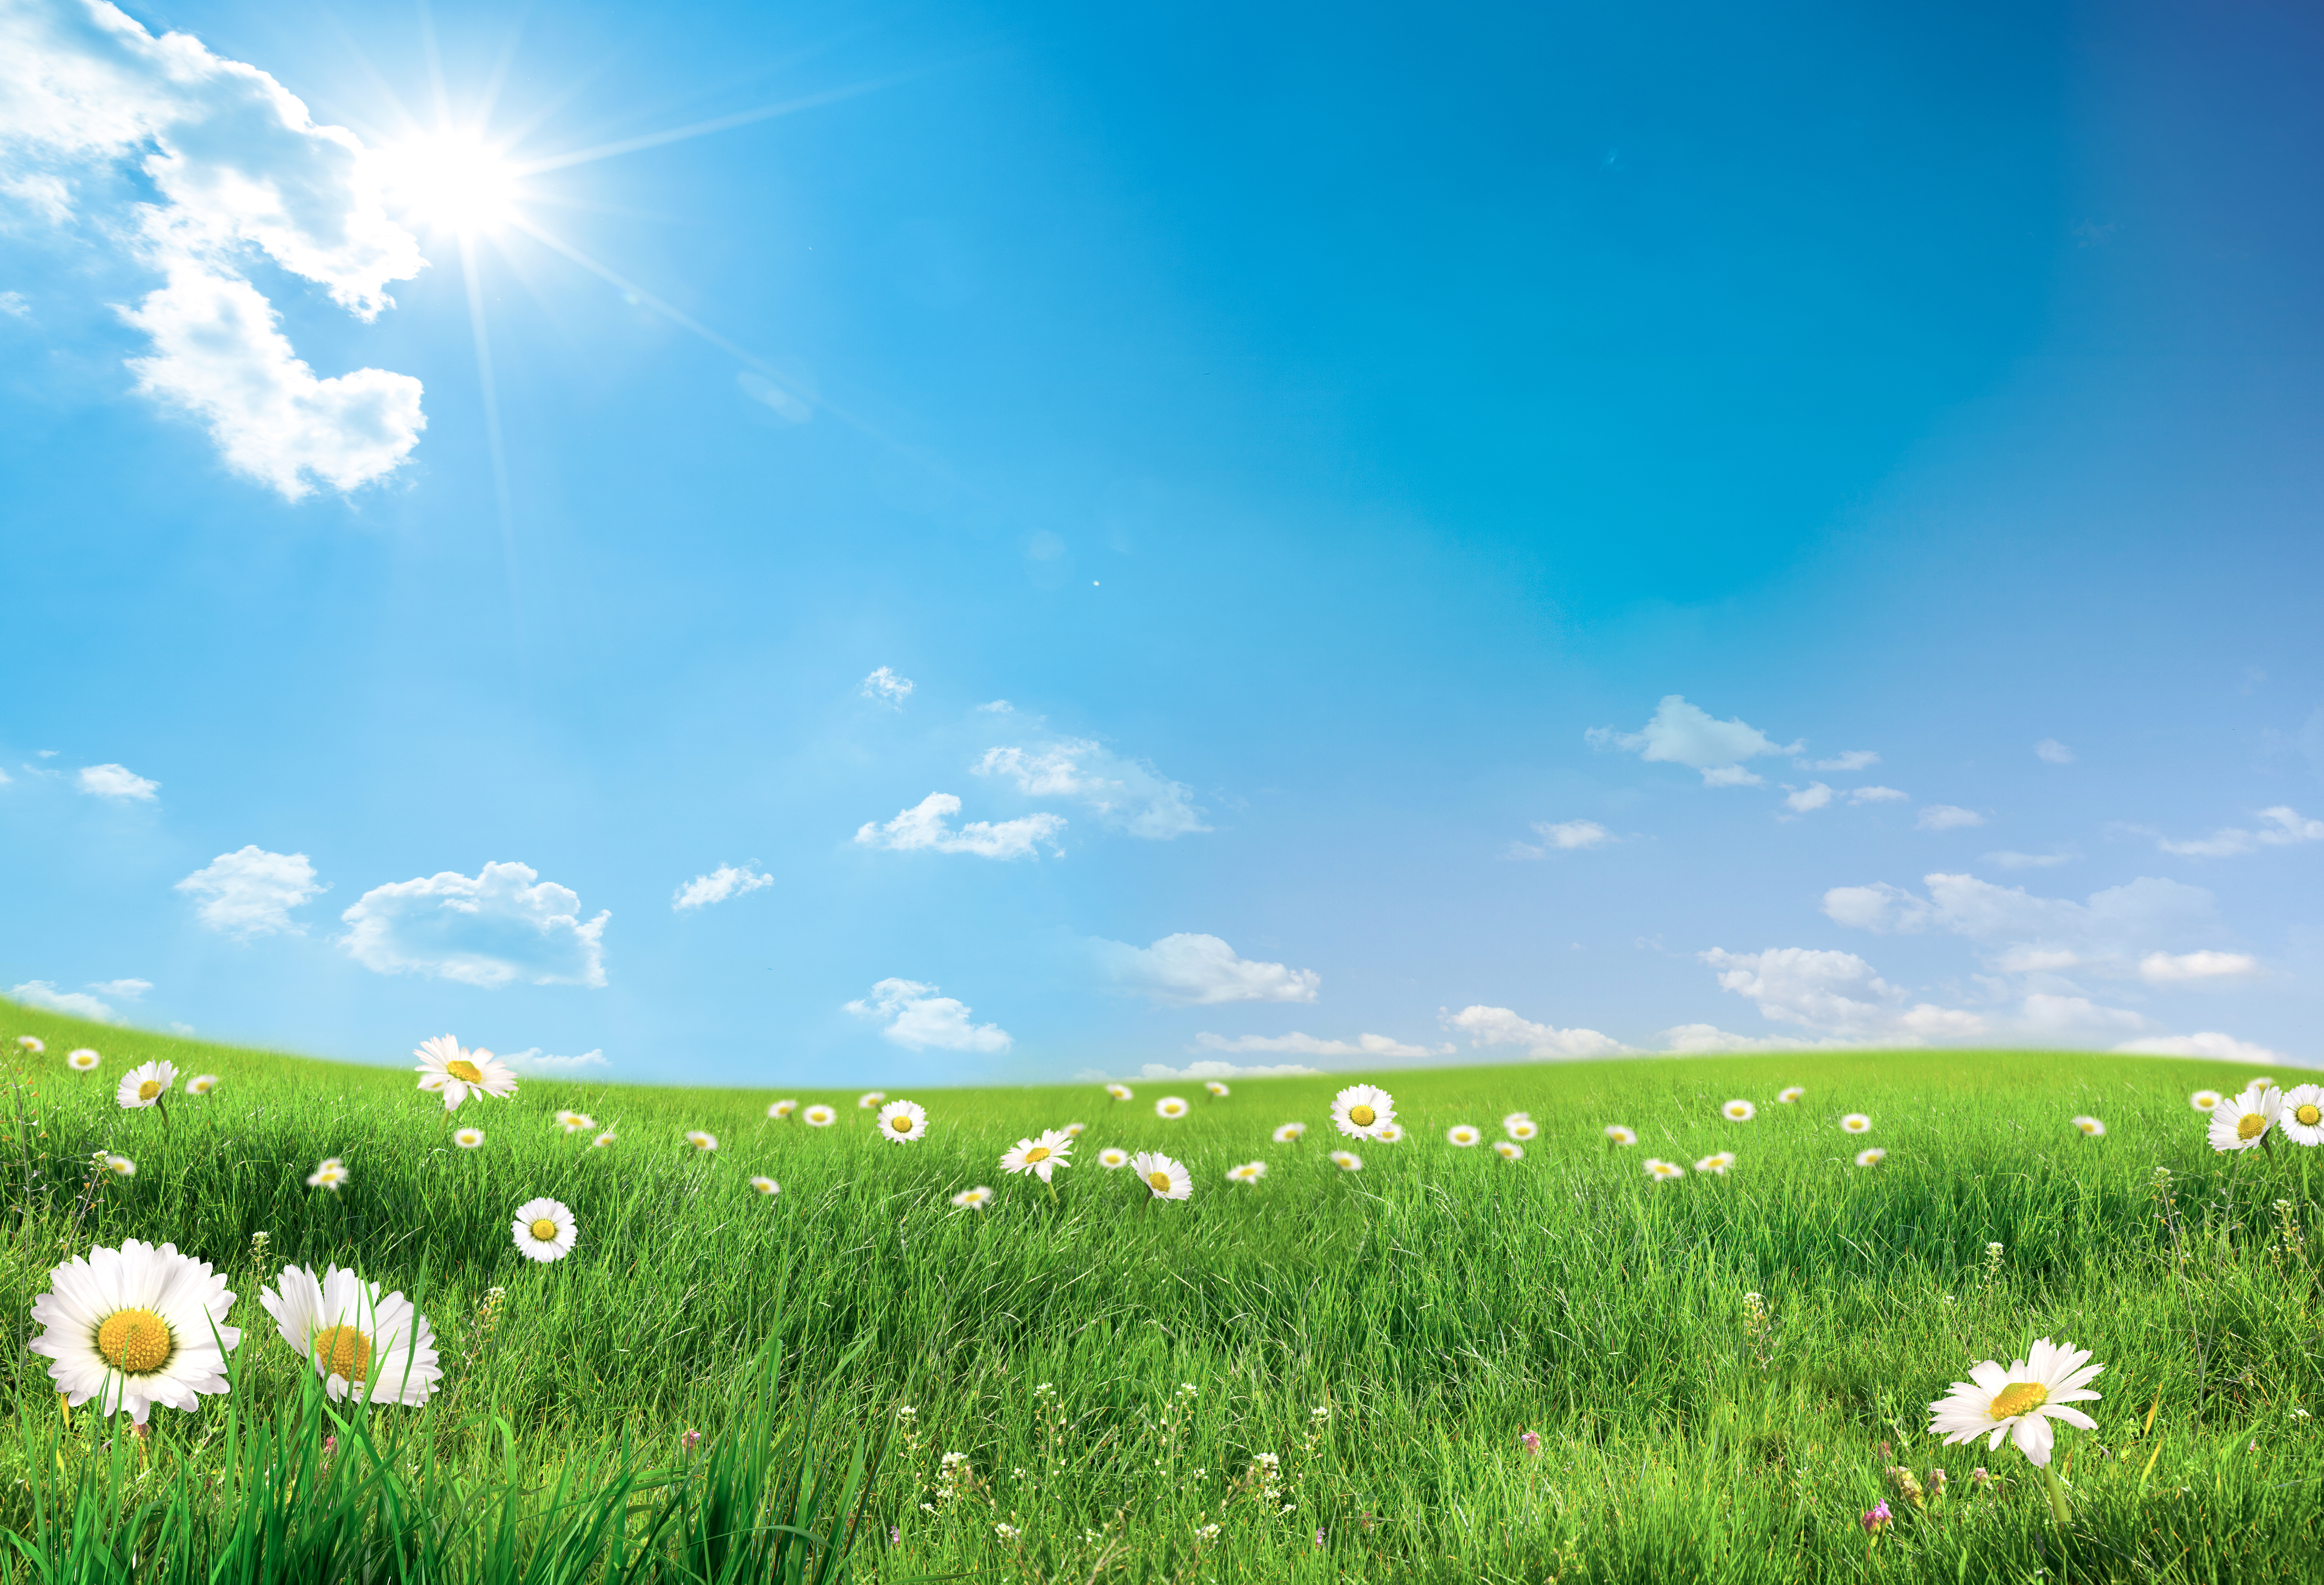 Summer_Lawn_with_Daisies_Background.jpg?m=1432120751.